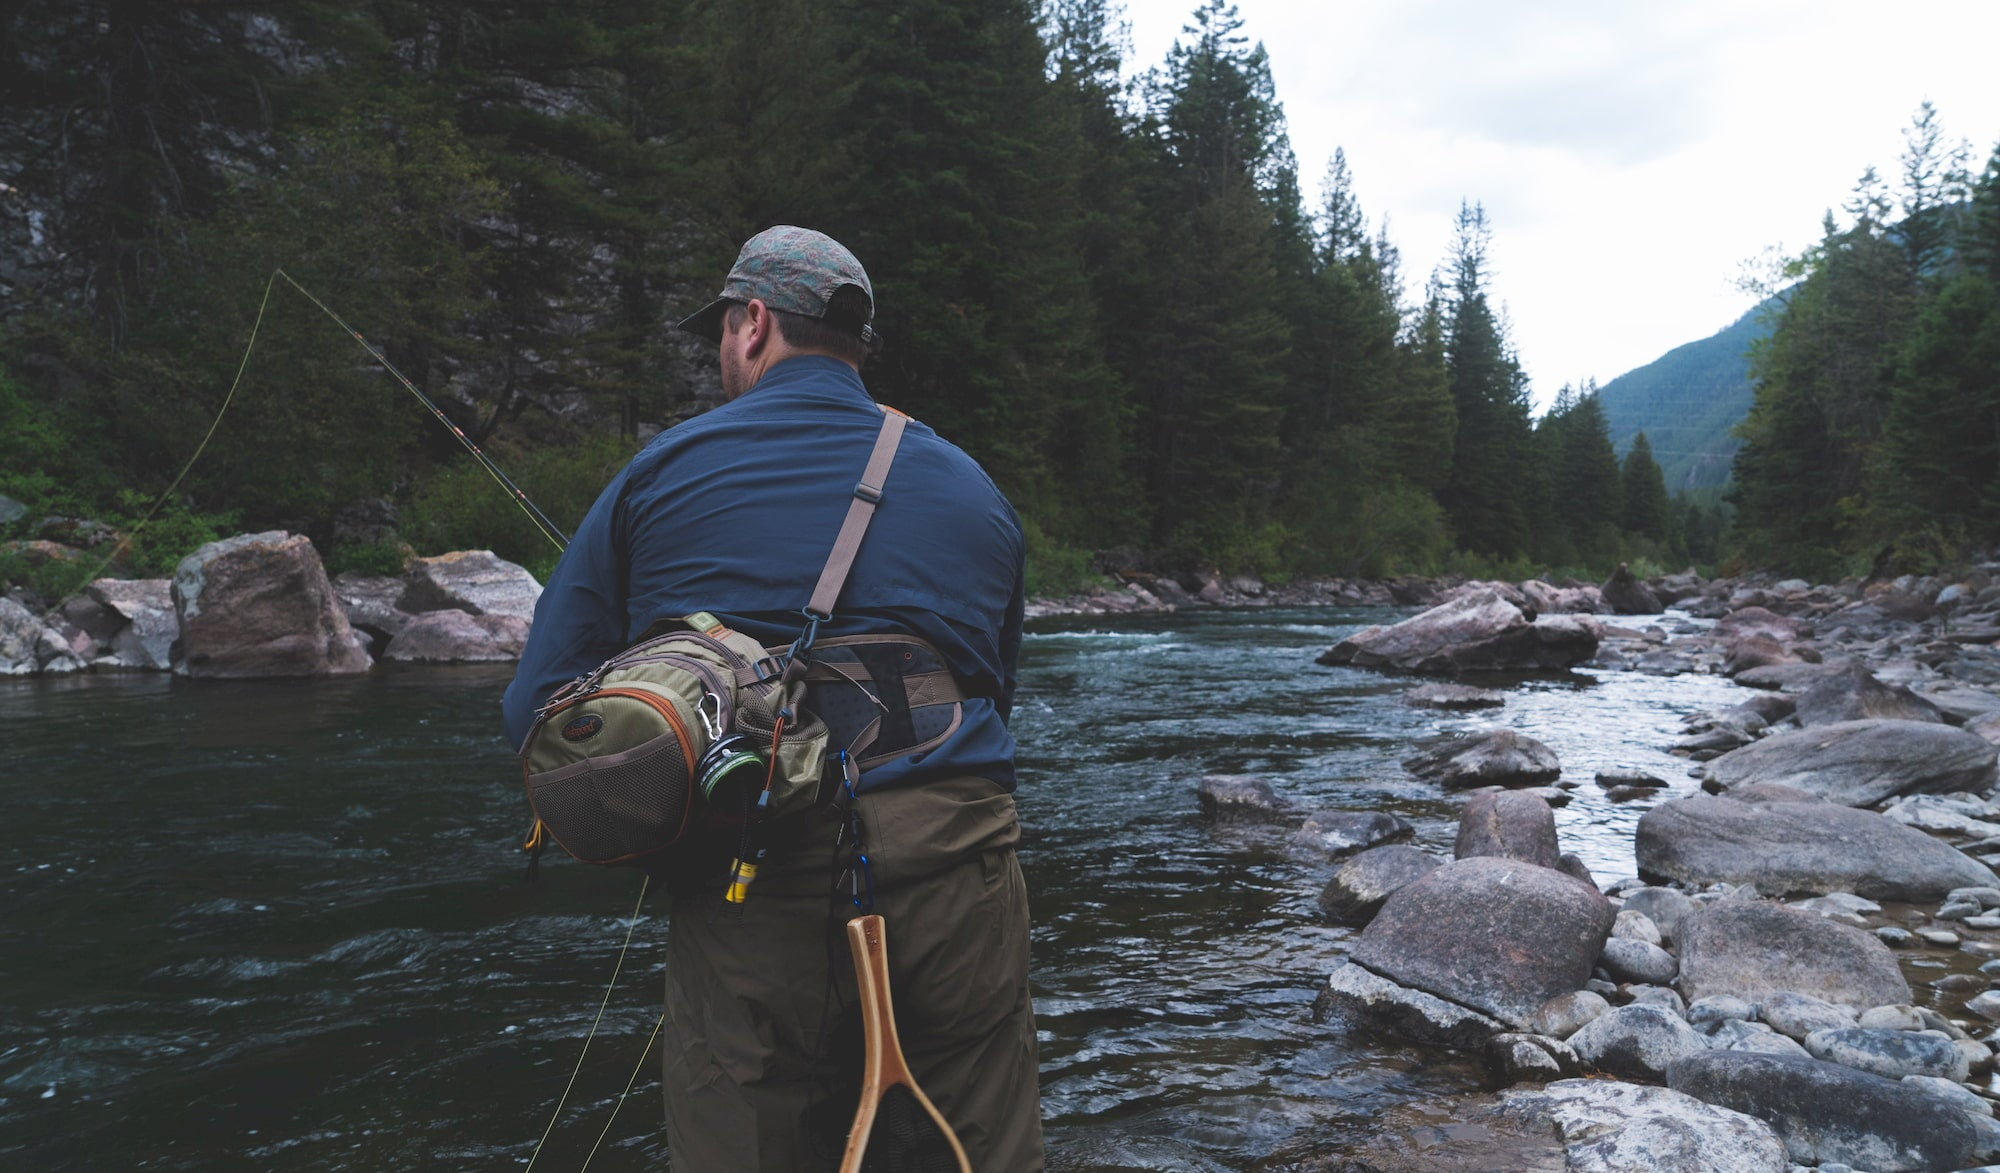 Fly fisherman casting in an alpine river.